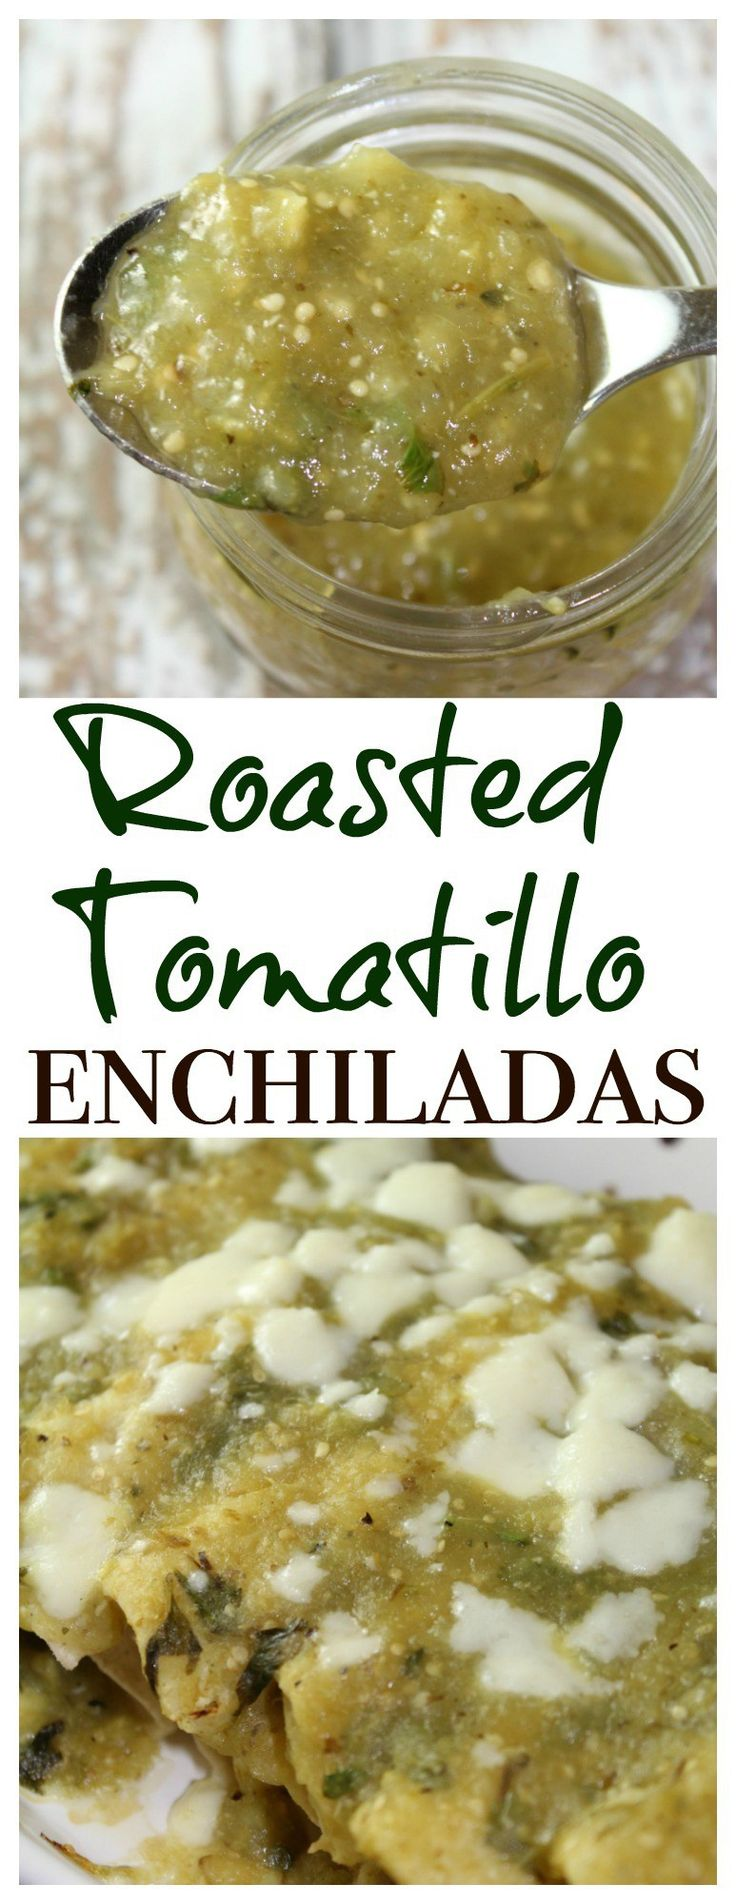 These roasted tomatillo enchiladas combine chicken enchiladas with fresh tomatillos, serrano chiles, garlic and onion blended to create a rich, green sauce that'll be your new weeknight go-to meal.